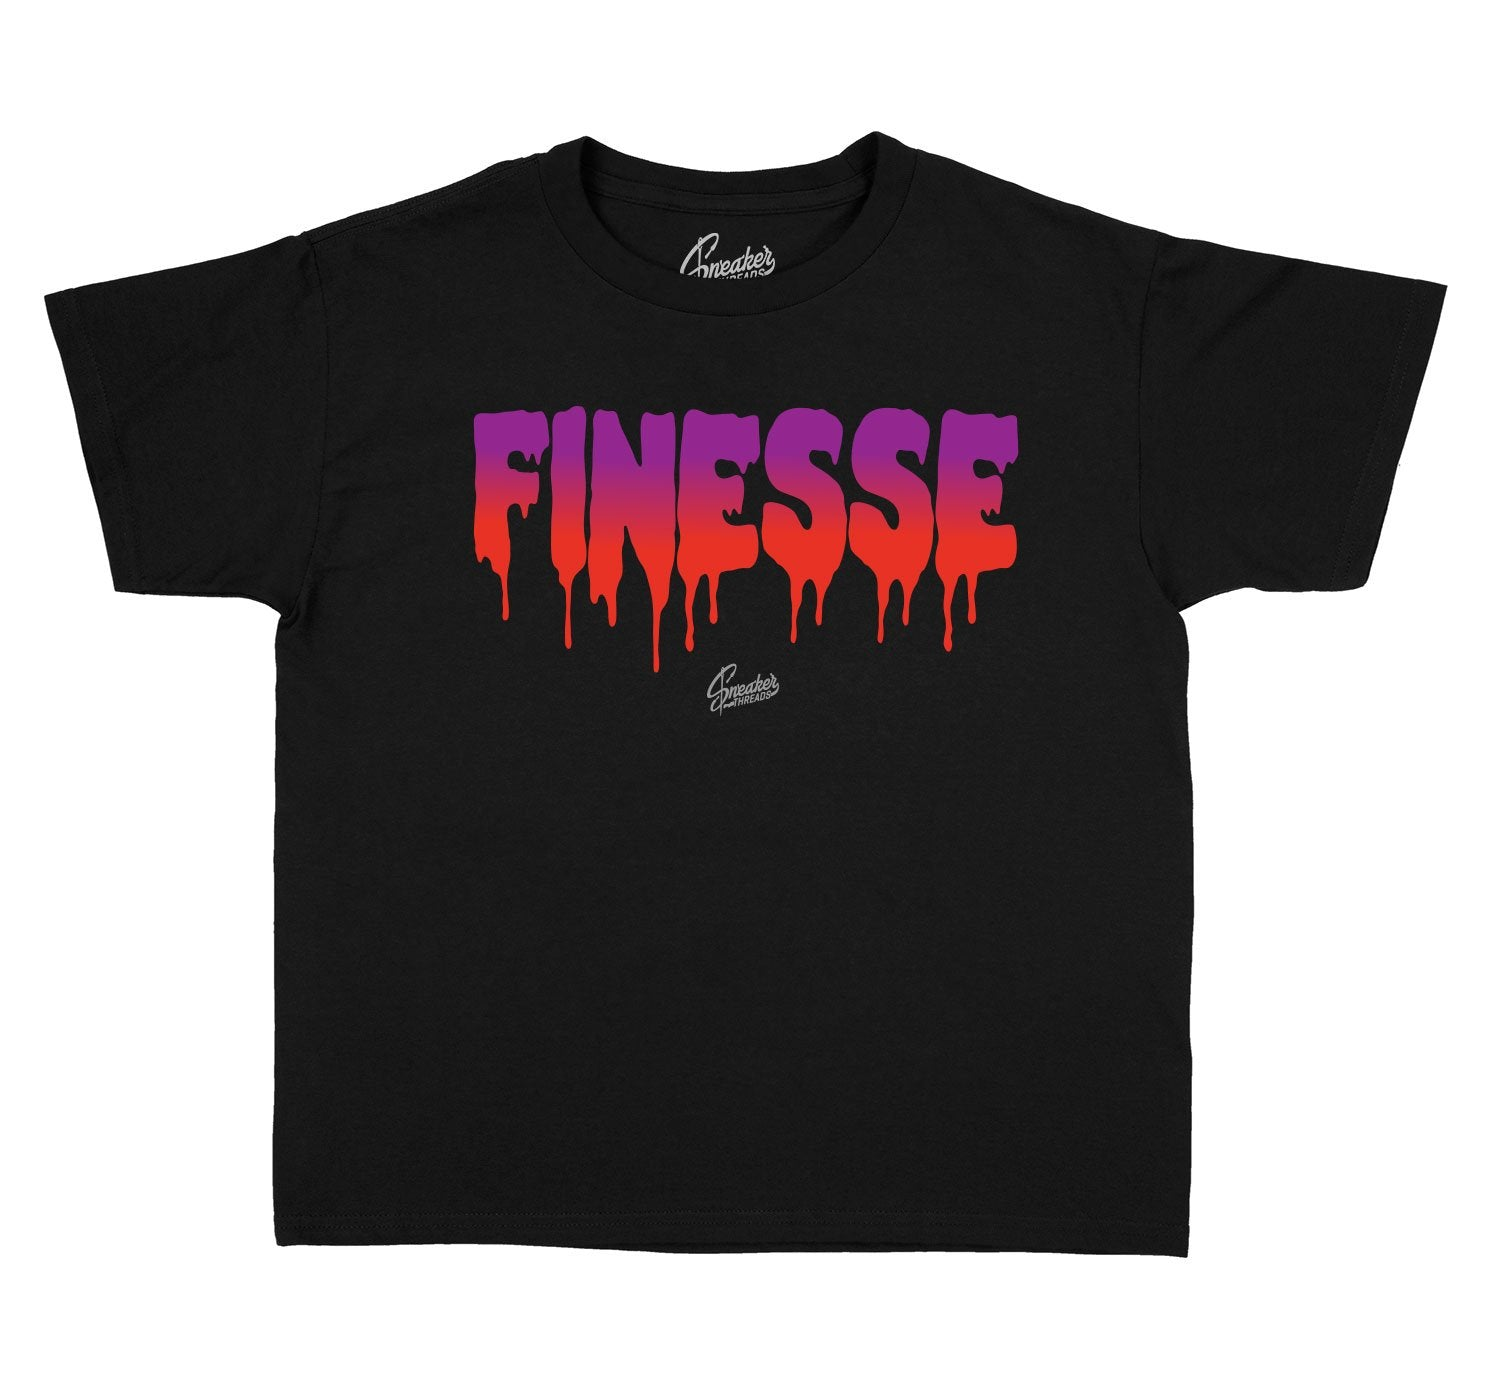 Jordan Kids Finesse shirt to match Black Gloss 7's